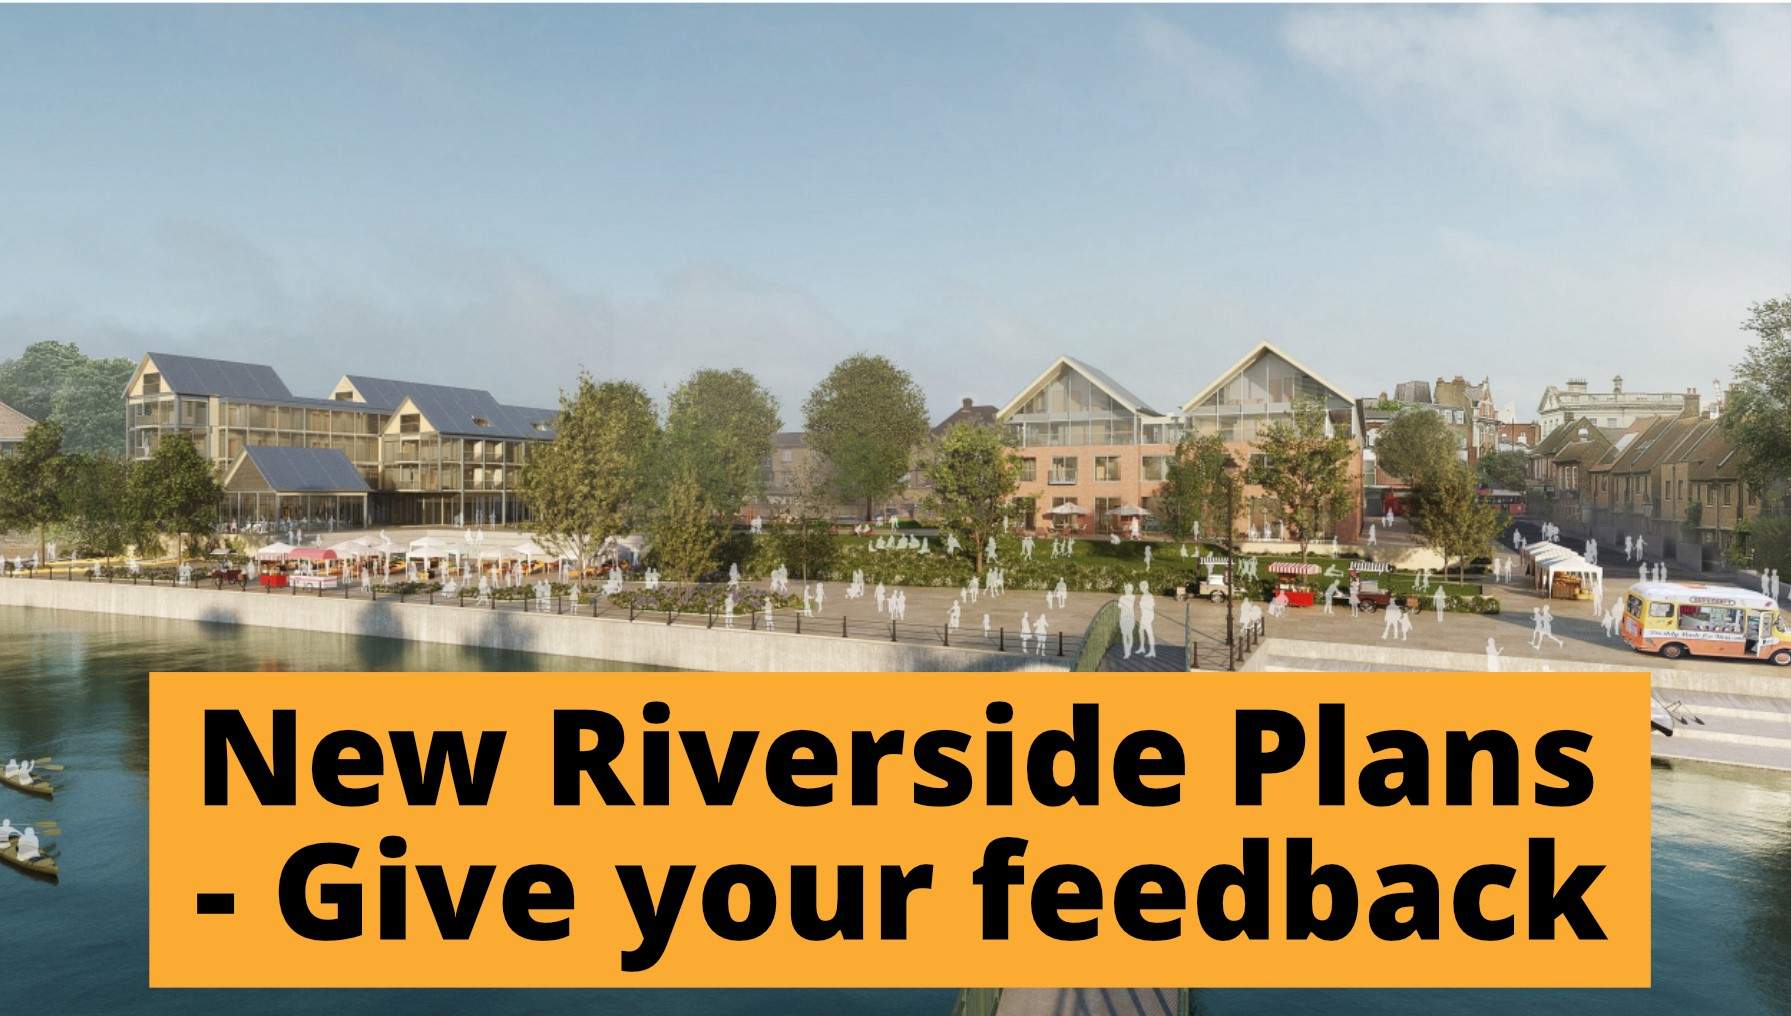 New Riverside Plans - Give your feedback